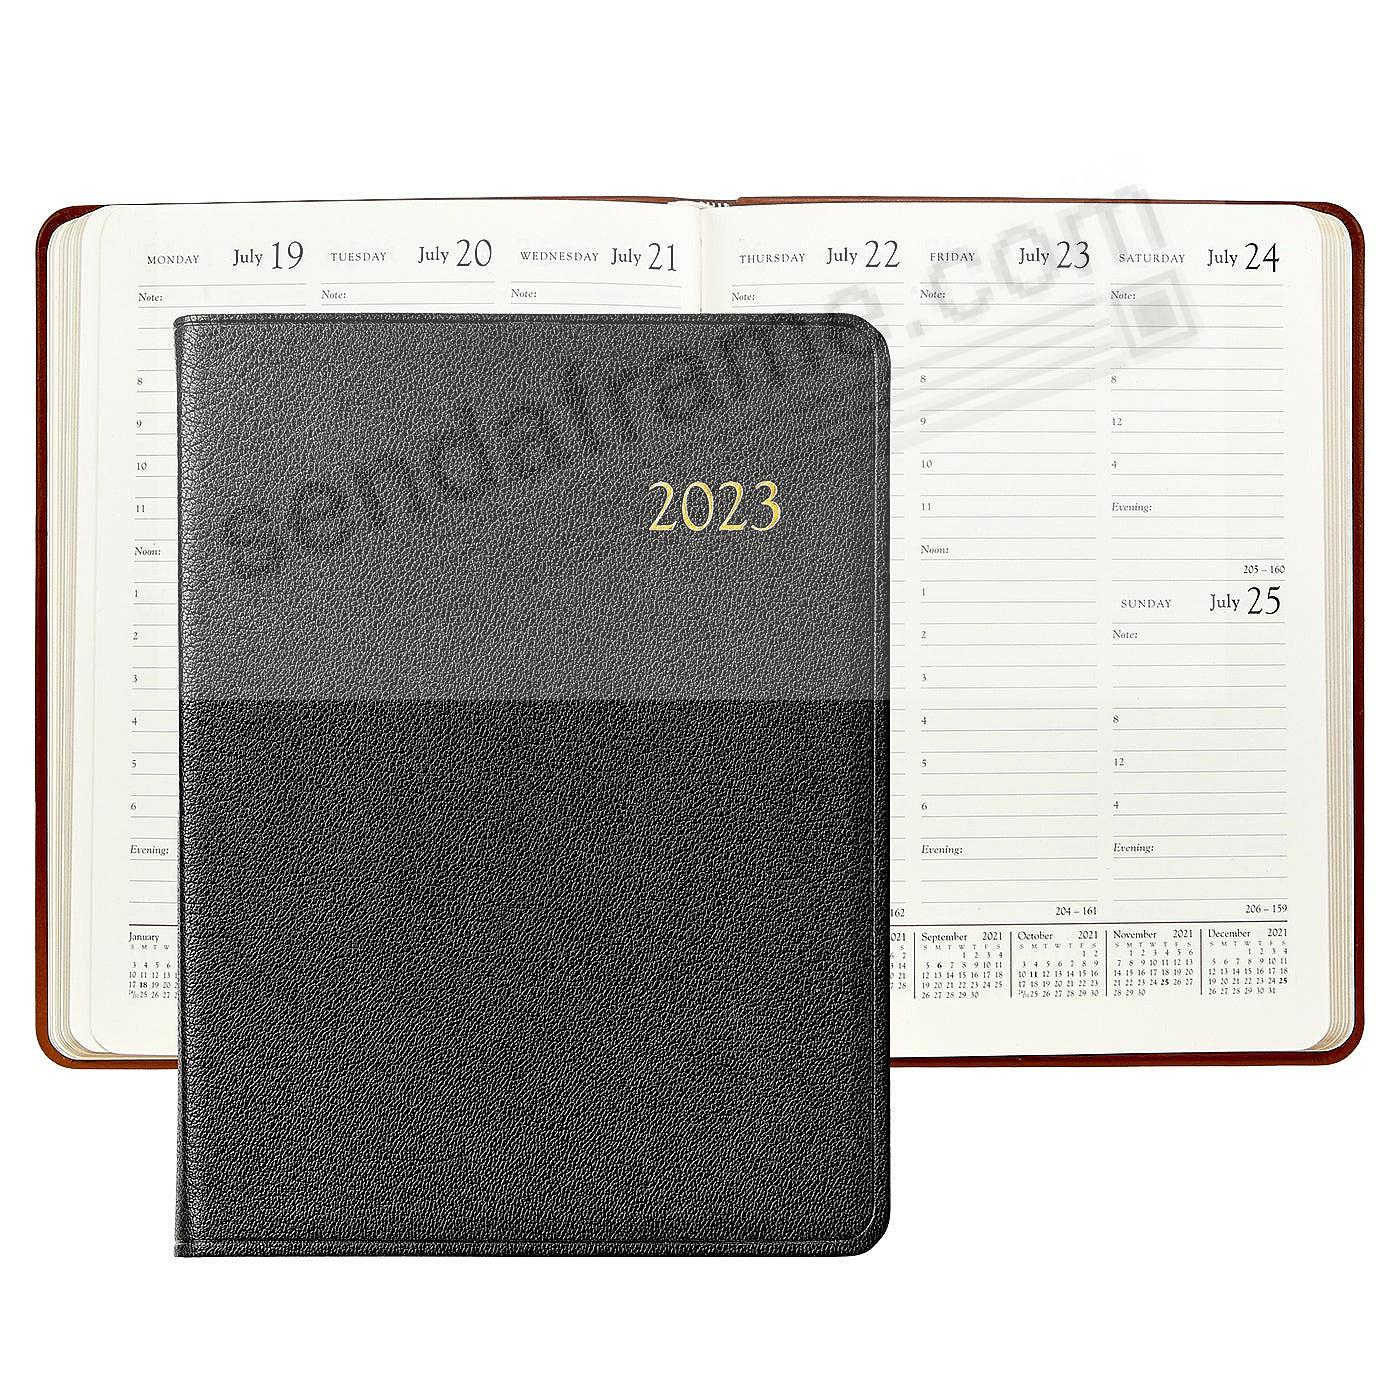 2020 BLACK Goatskin Leather 9in Desk Diary by Graphic Image™